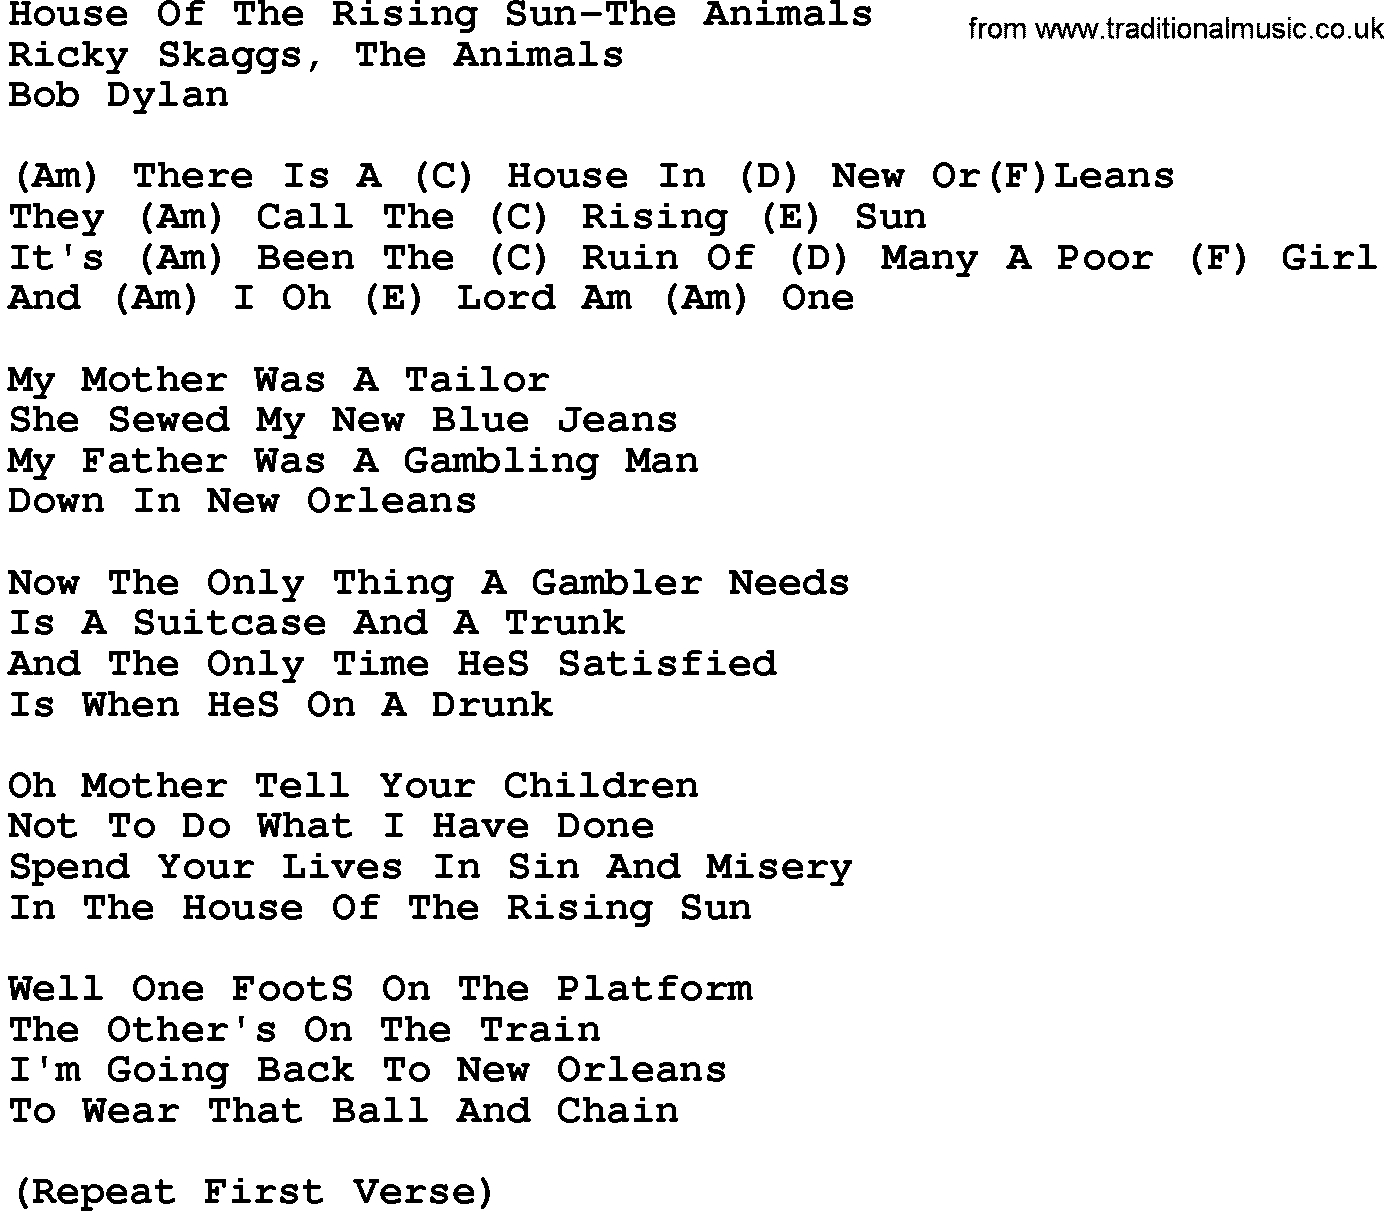 House Of The Rising Sun Chords Country Musichouse Of The Rising Sun The Animals Lyrics And Chords